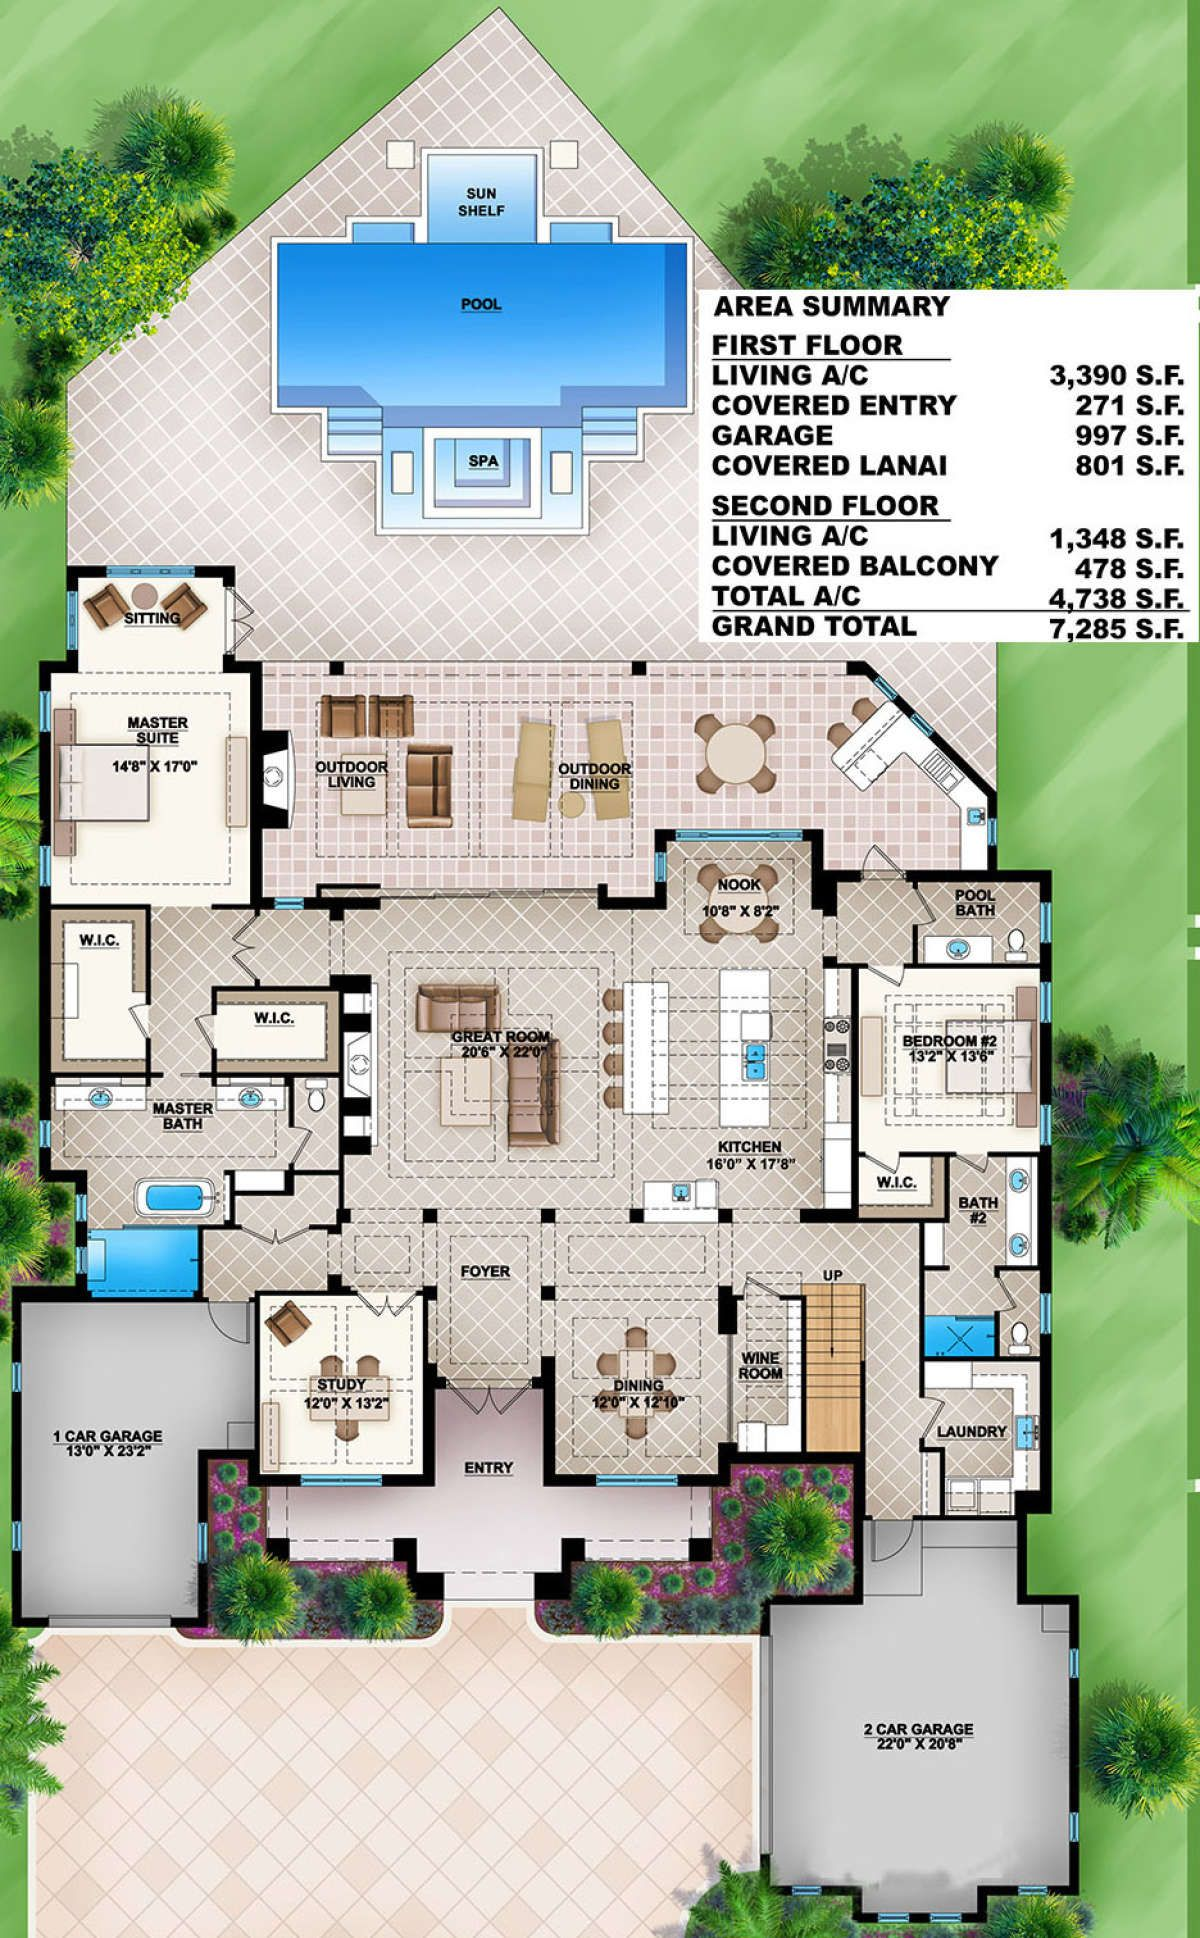 House Plan 207 00008 Coastal Plan 4 738 Square Feet 4 Bedrooms 4 5 Bathrooms In 2020 Farmhouse Style House Plans Pool House Plans House Plans